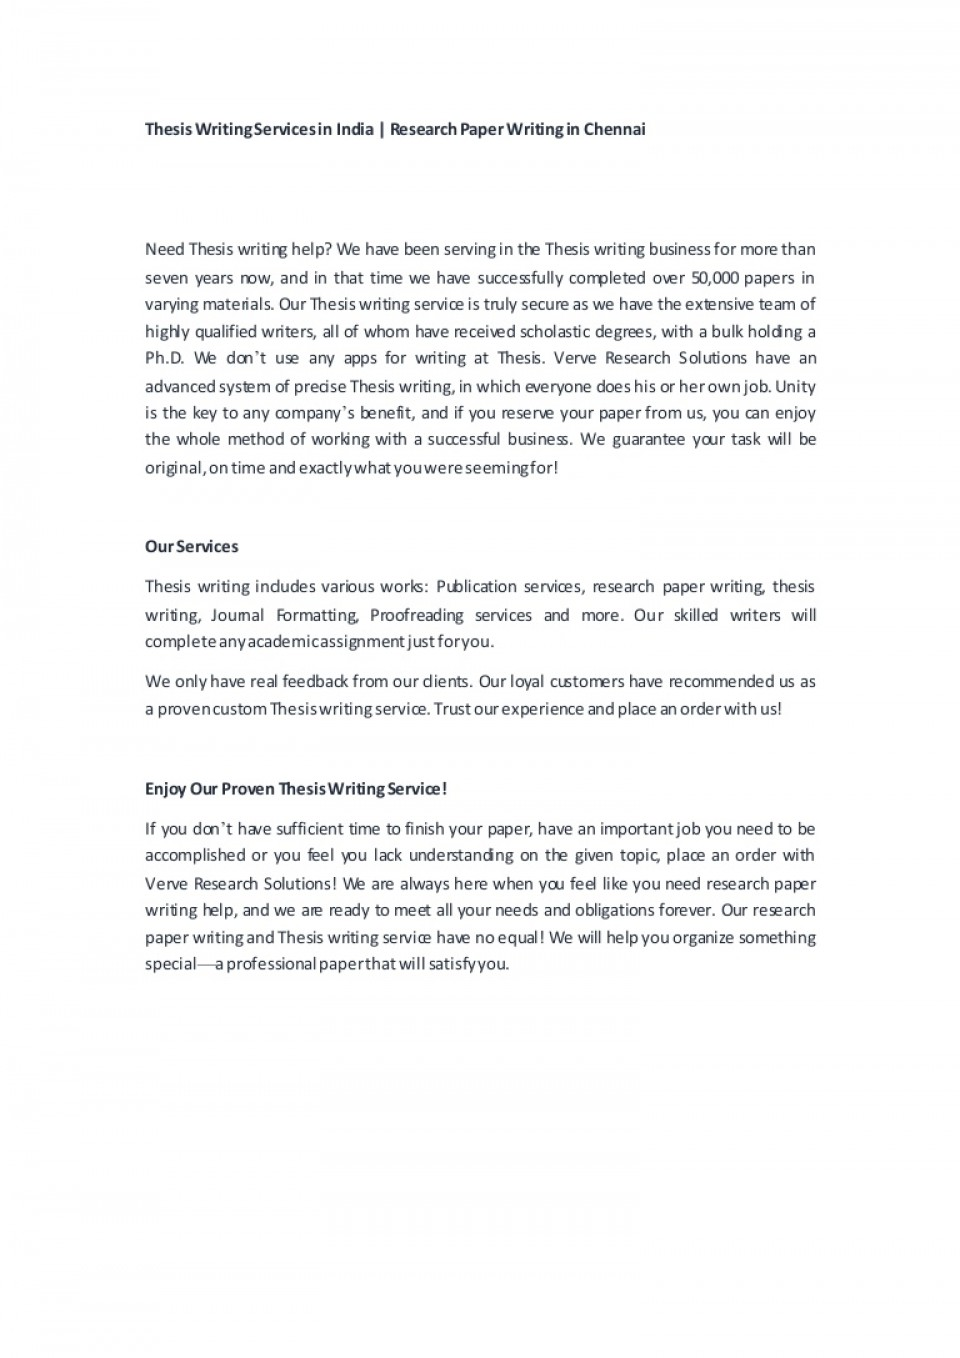 010 Academic Research Paper Writing Services In India Ourexperience Thumbnail Marvelous Best 960